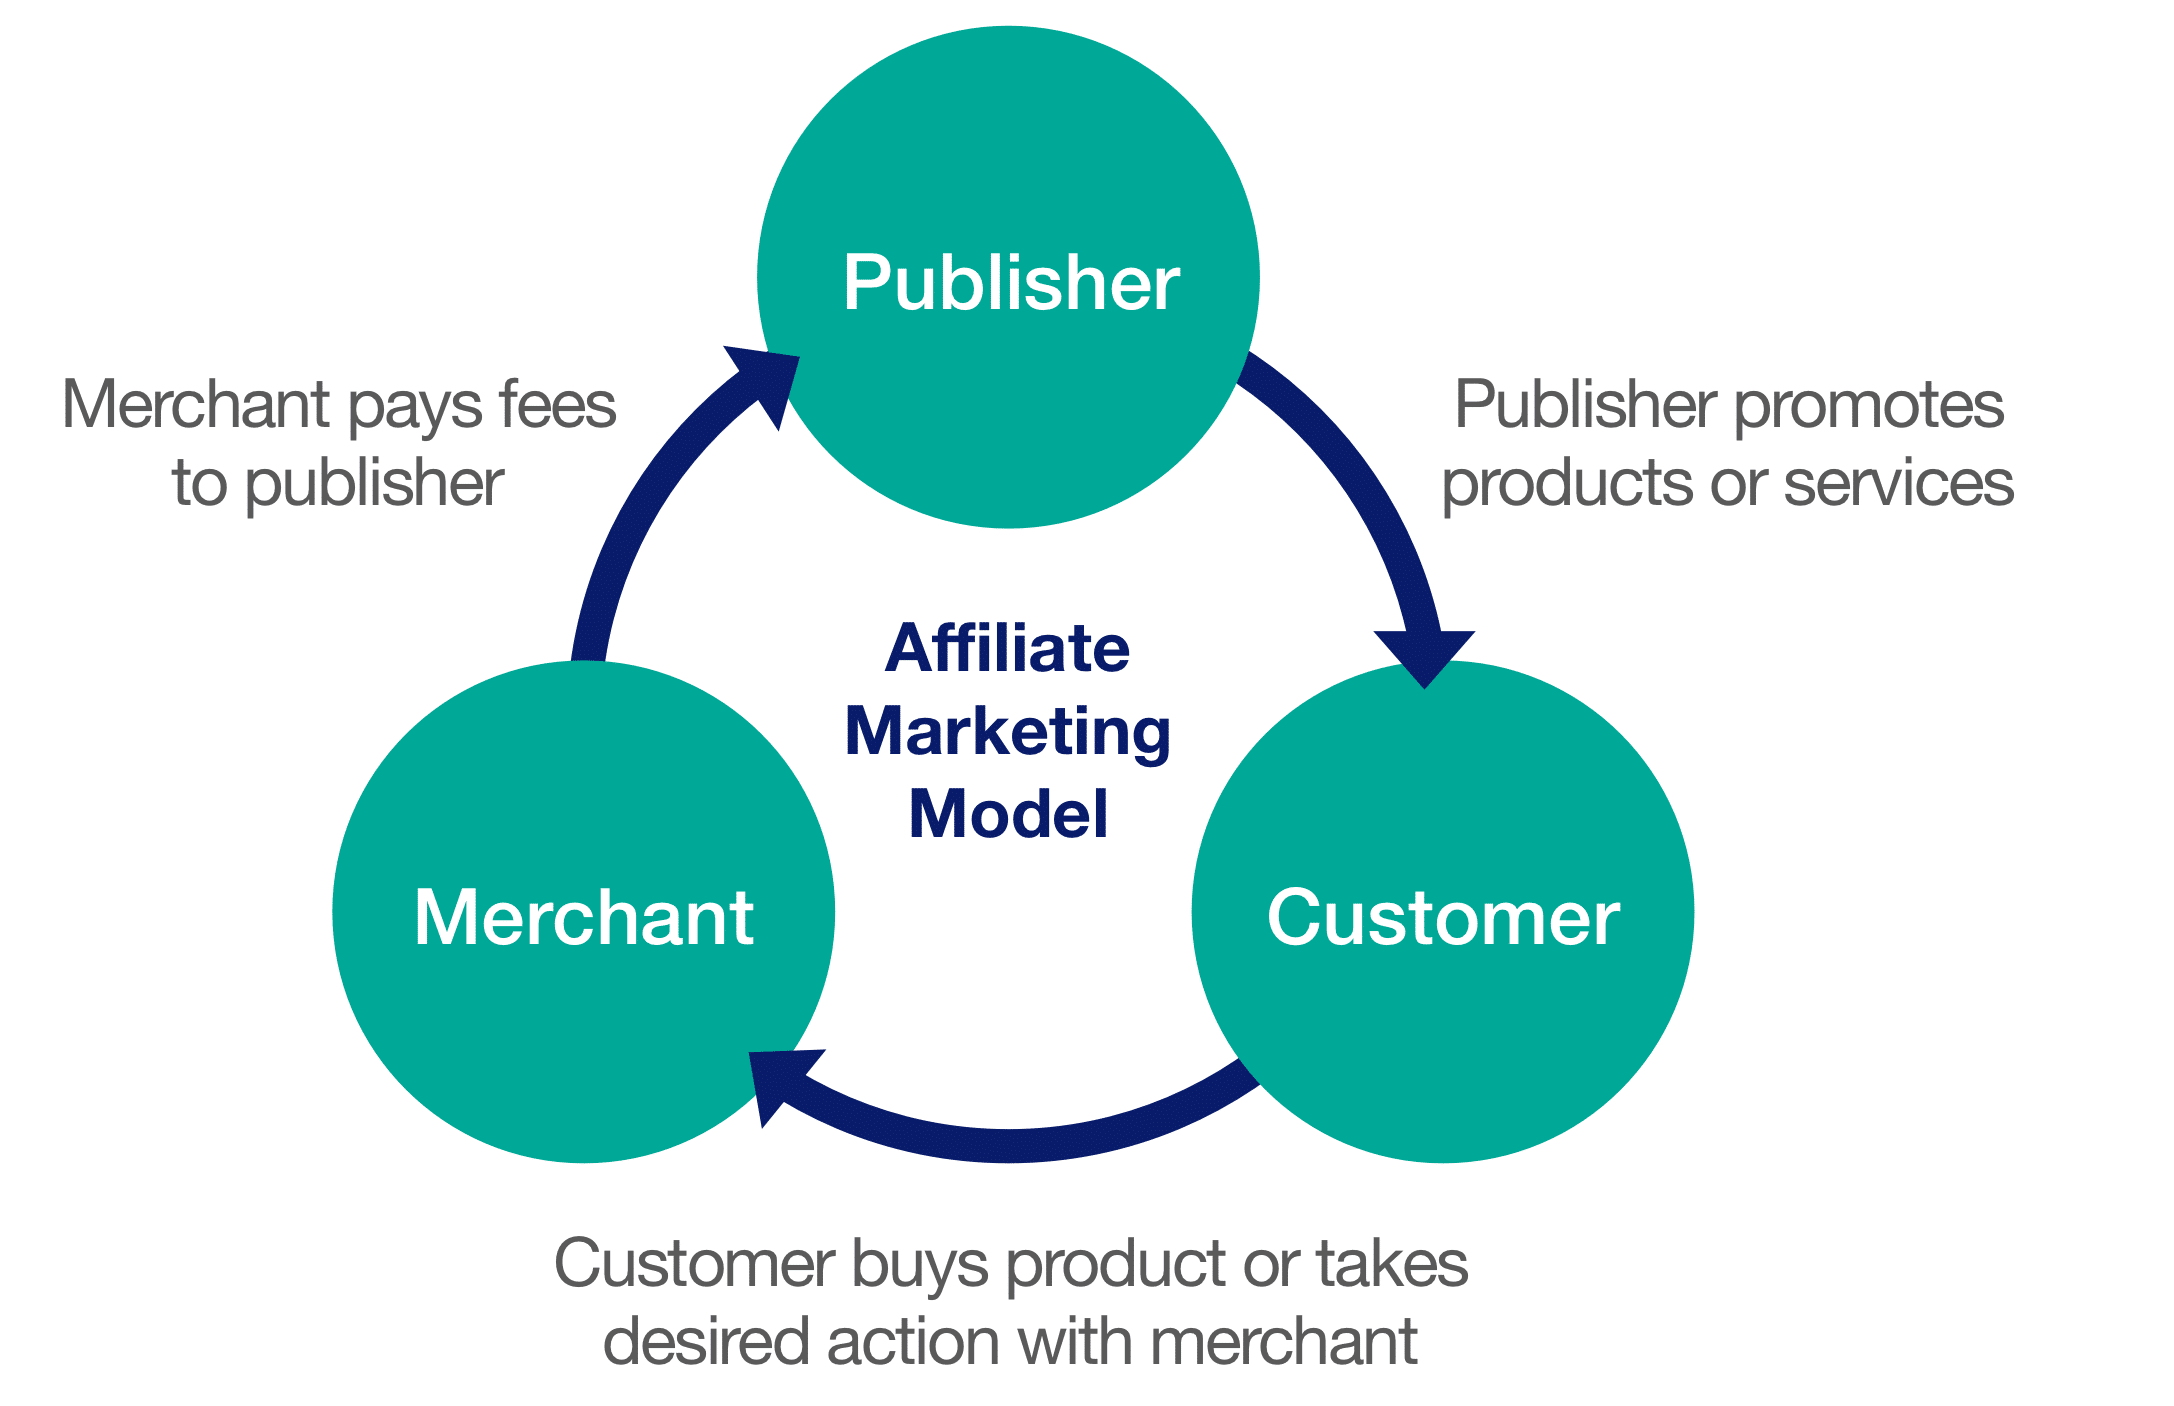 Affiliatemarketingmodel